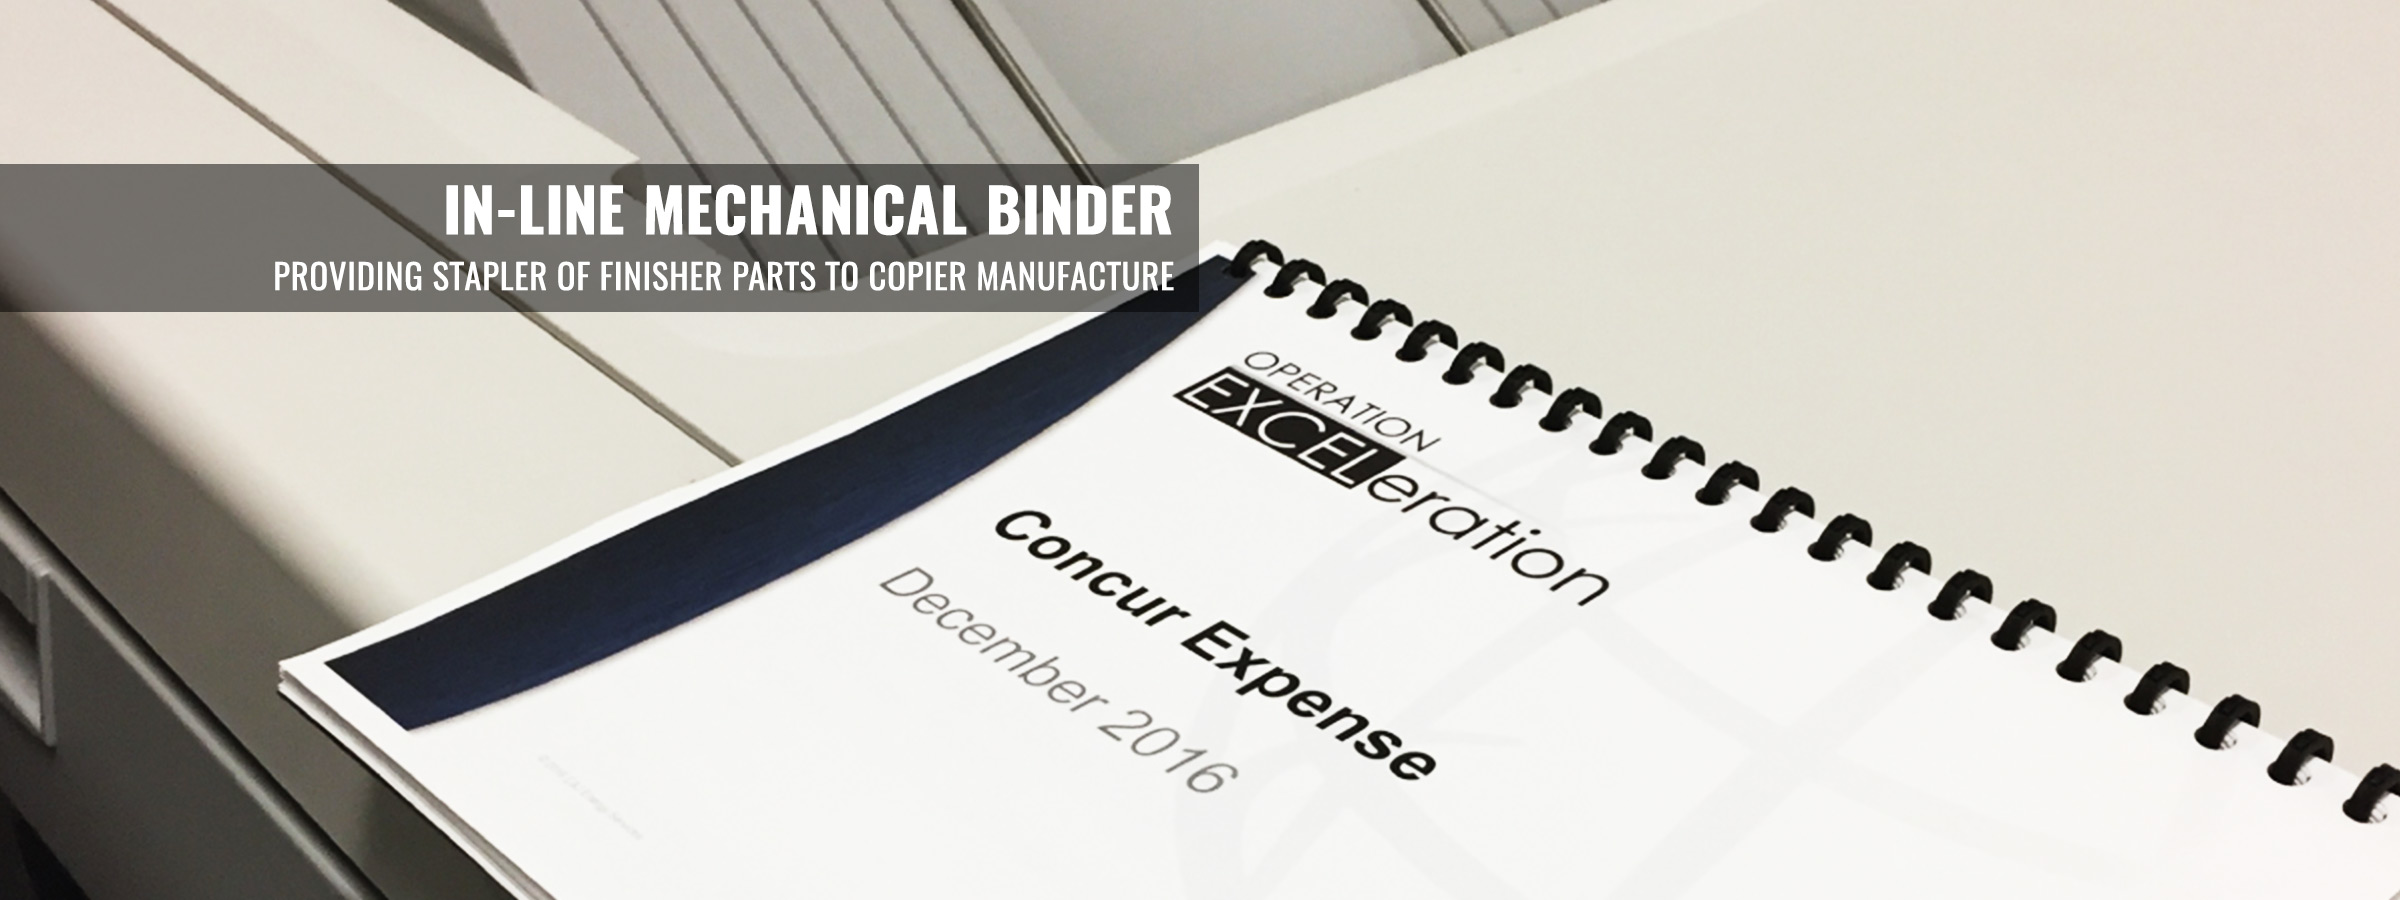 In-Line Mechanical Binder